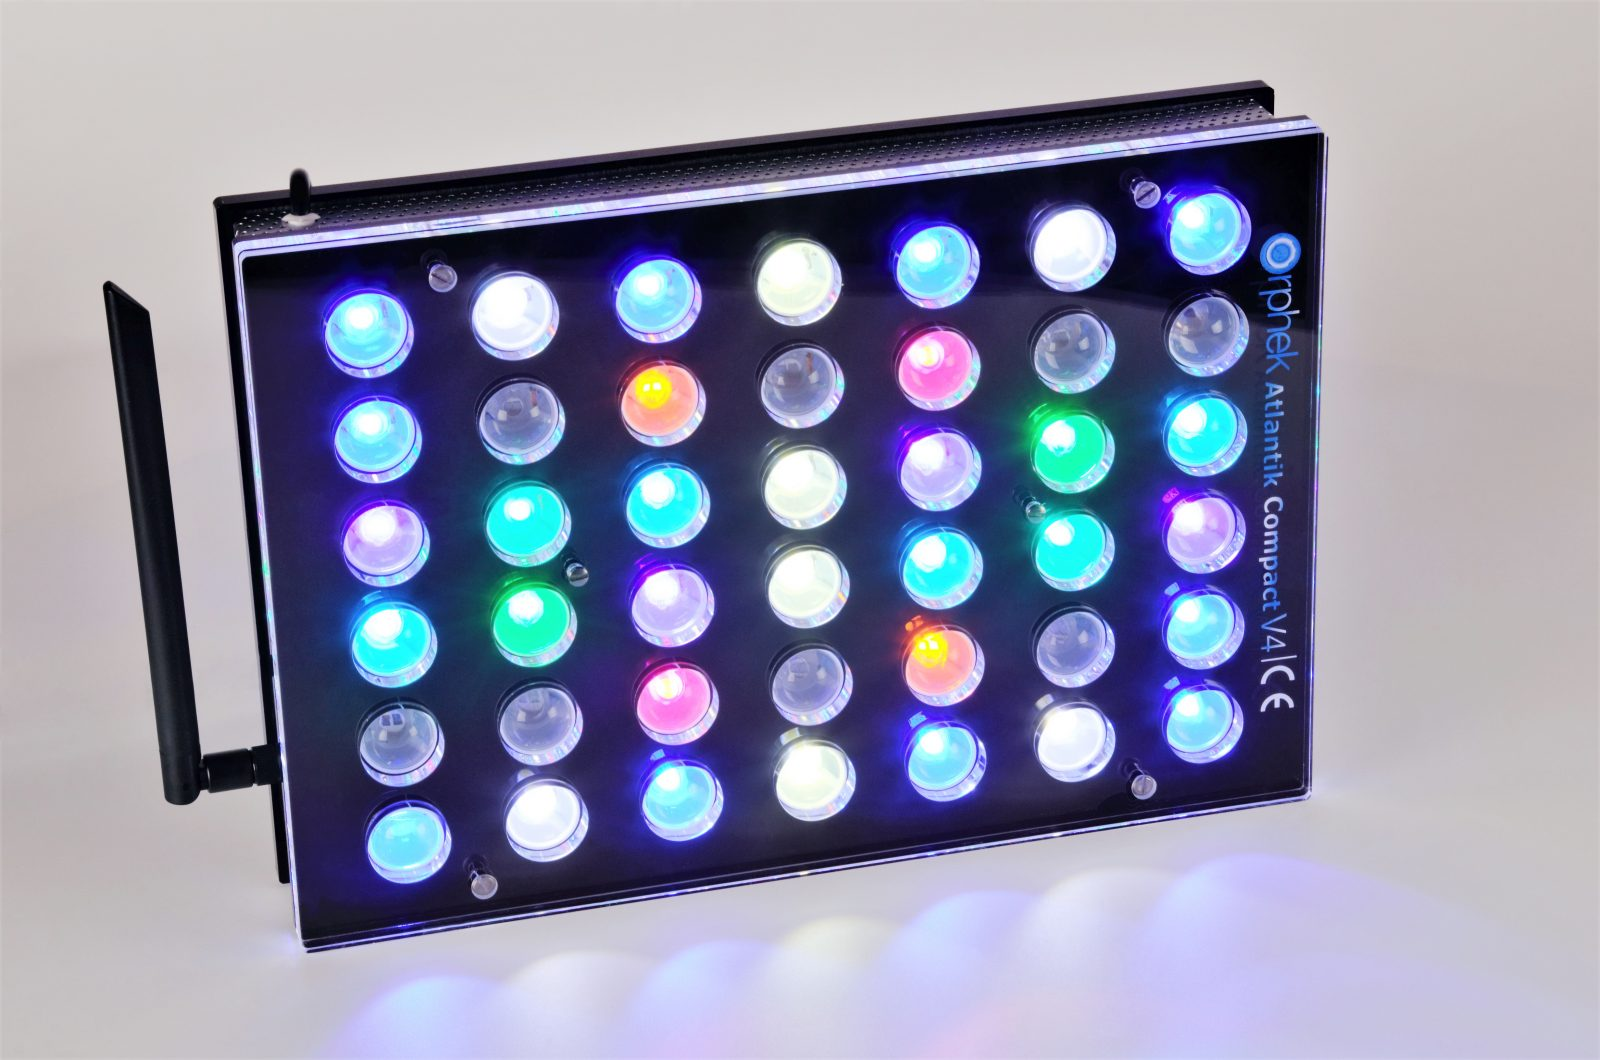 Orphek-Aquarium-LED-Lighting-Atlantik -Compact-V4-light -on-channel 1 + 2 + 4